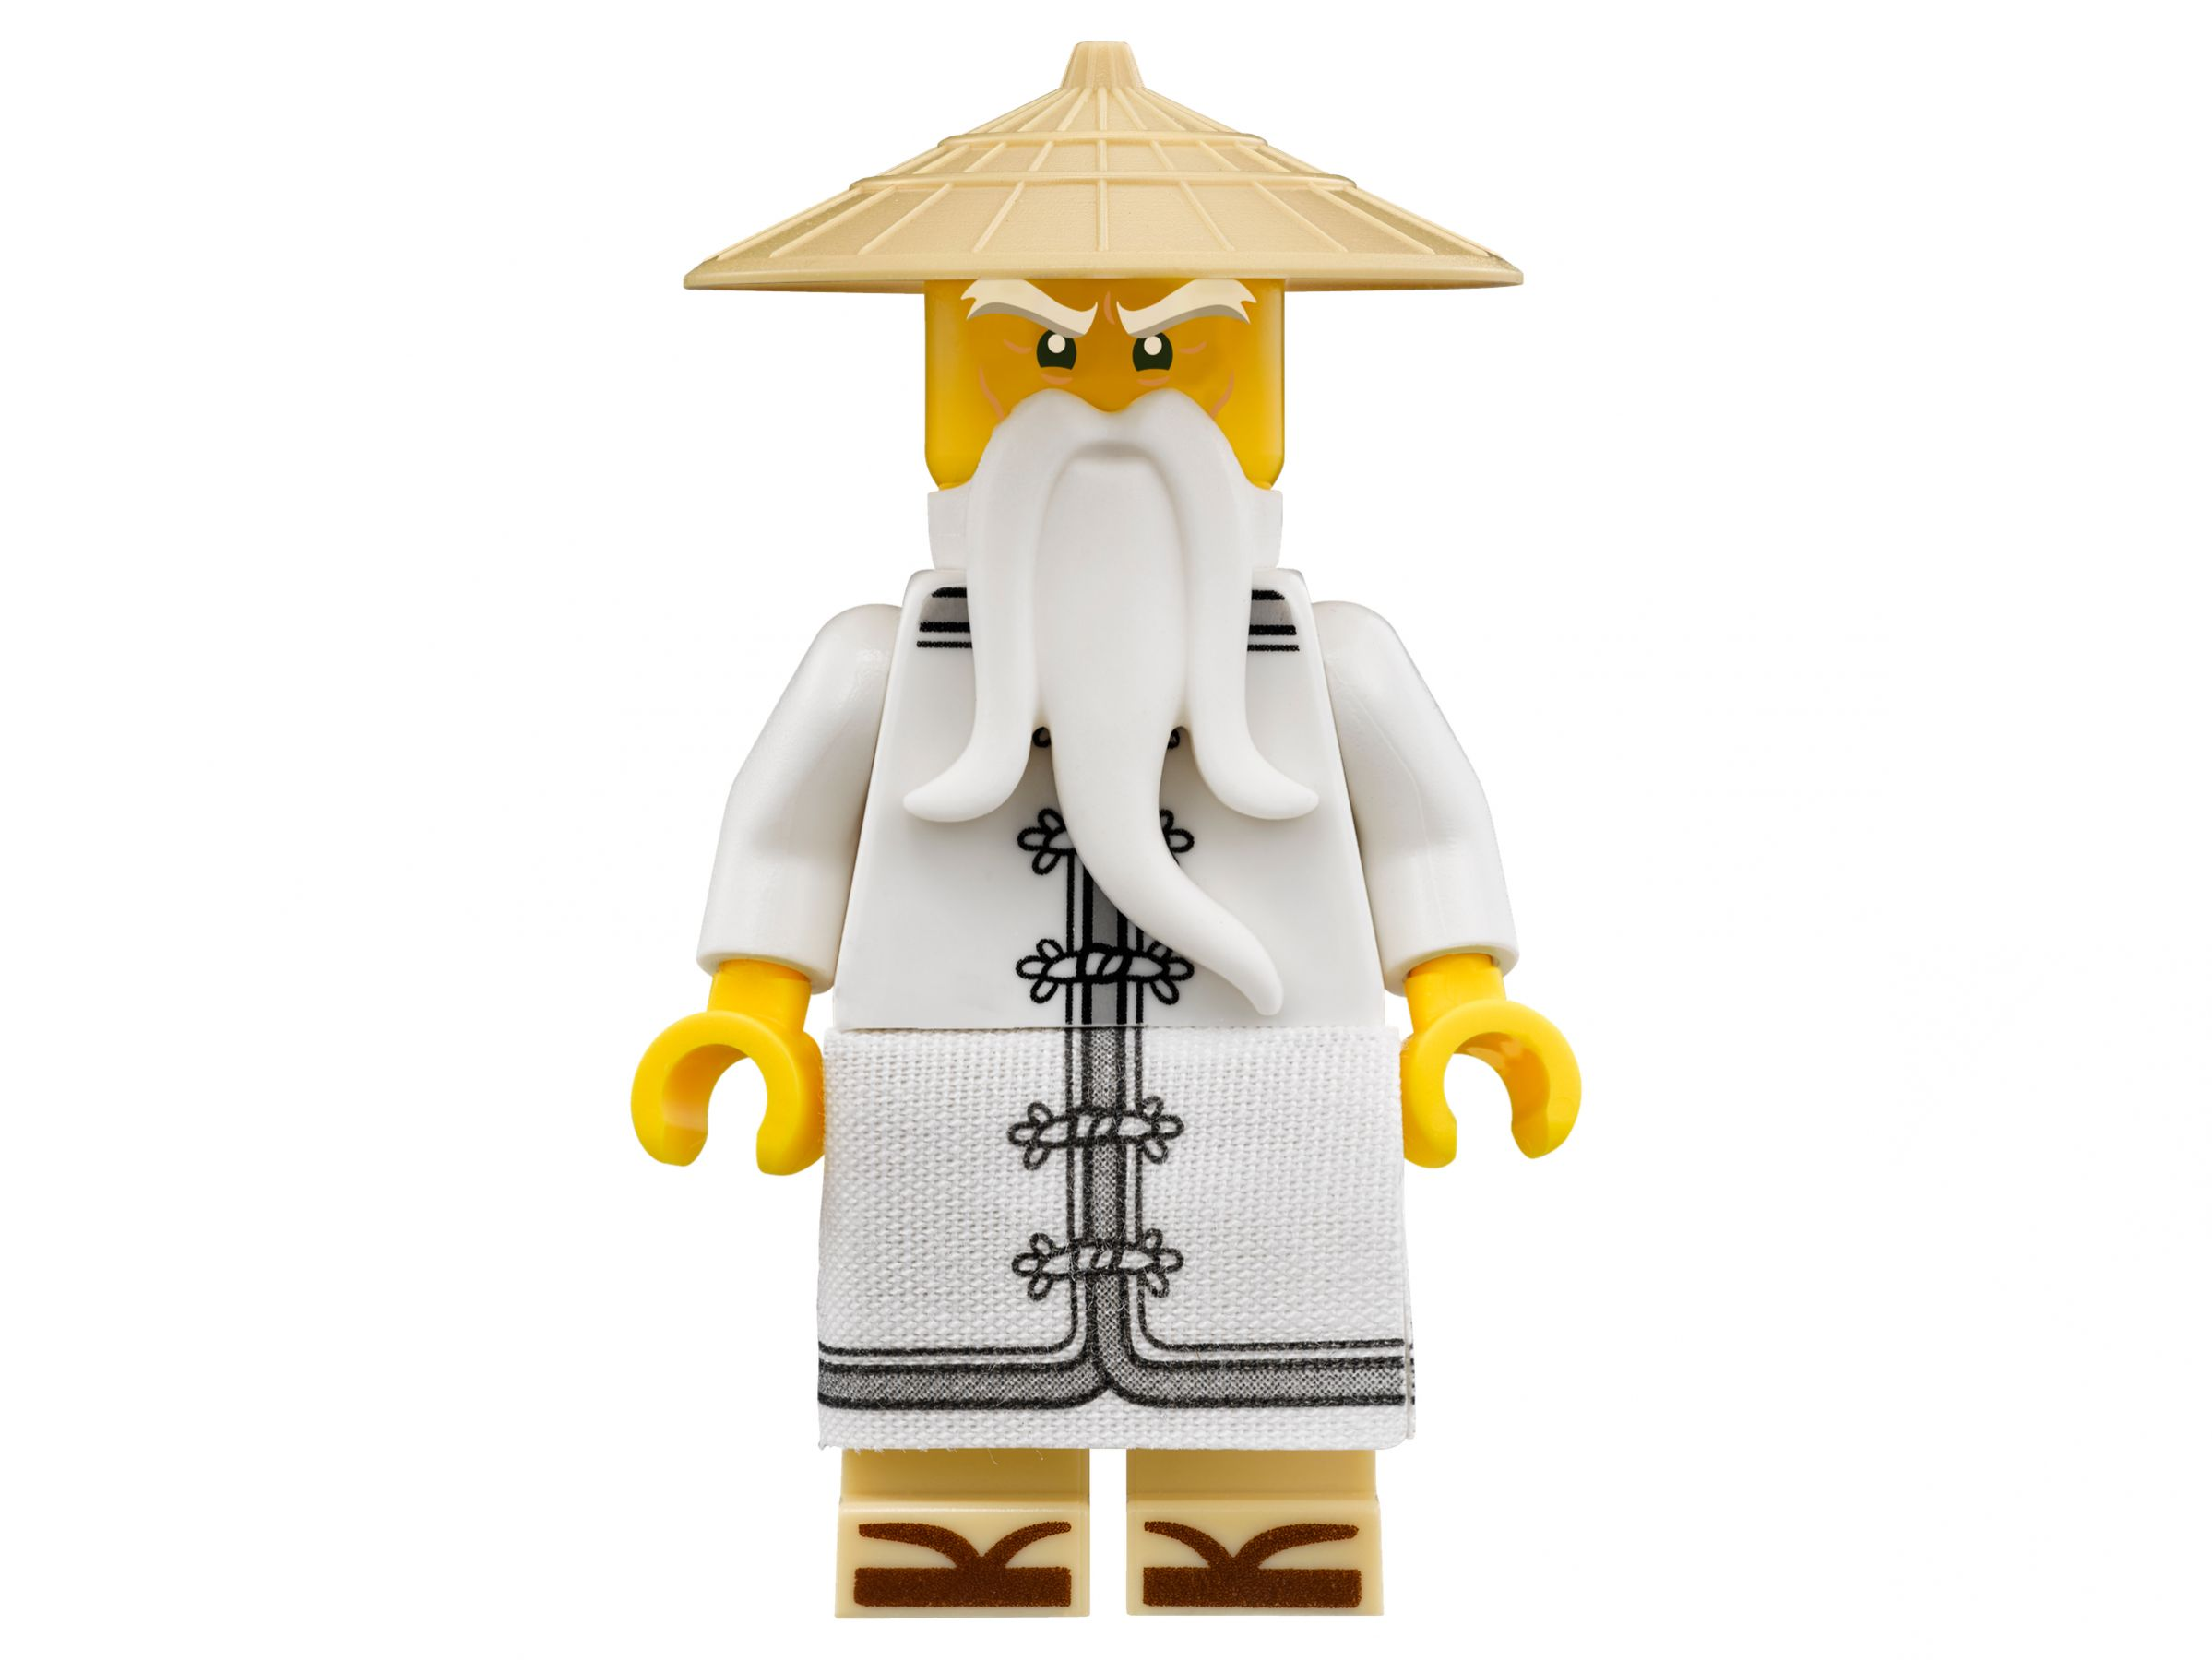 LEGO The LEGO Ninjago Movie 70618 Ninja-Flugsegler LEGO_70618_alt10.jpg